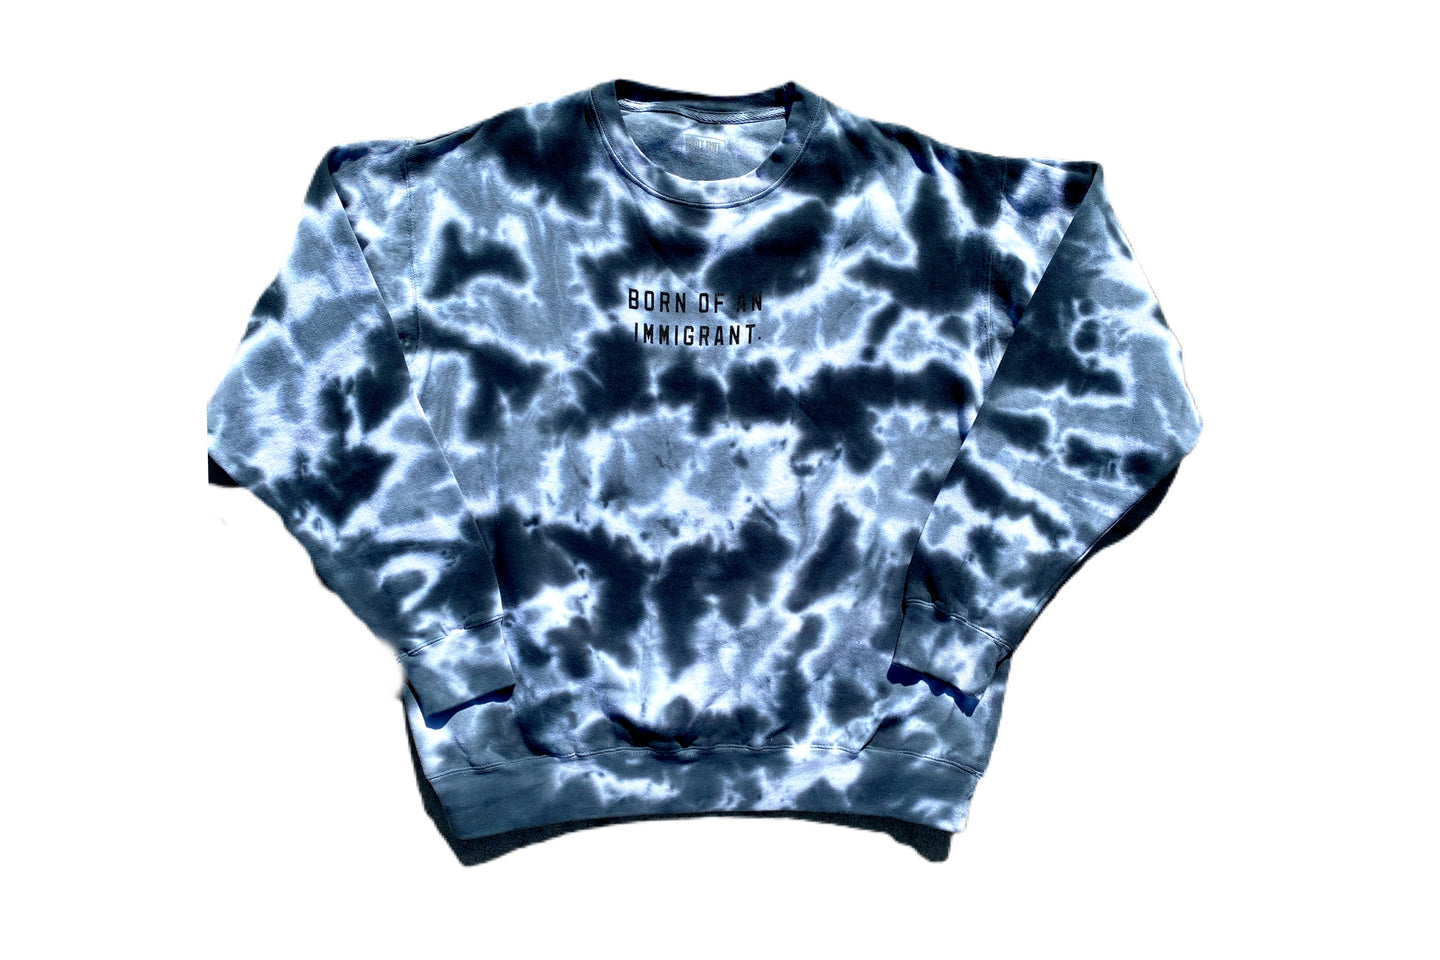 Born Of An Immigrant Tye Dye Dark Crew